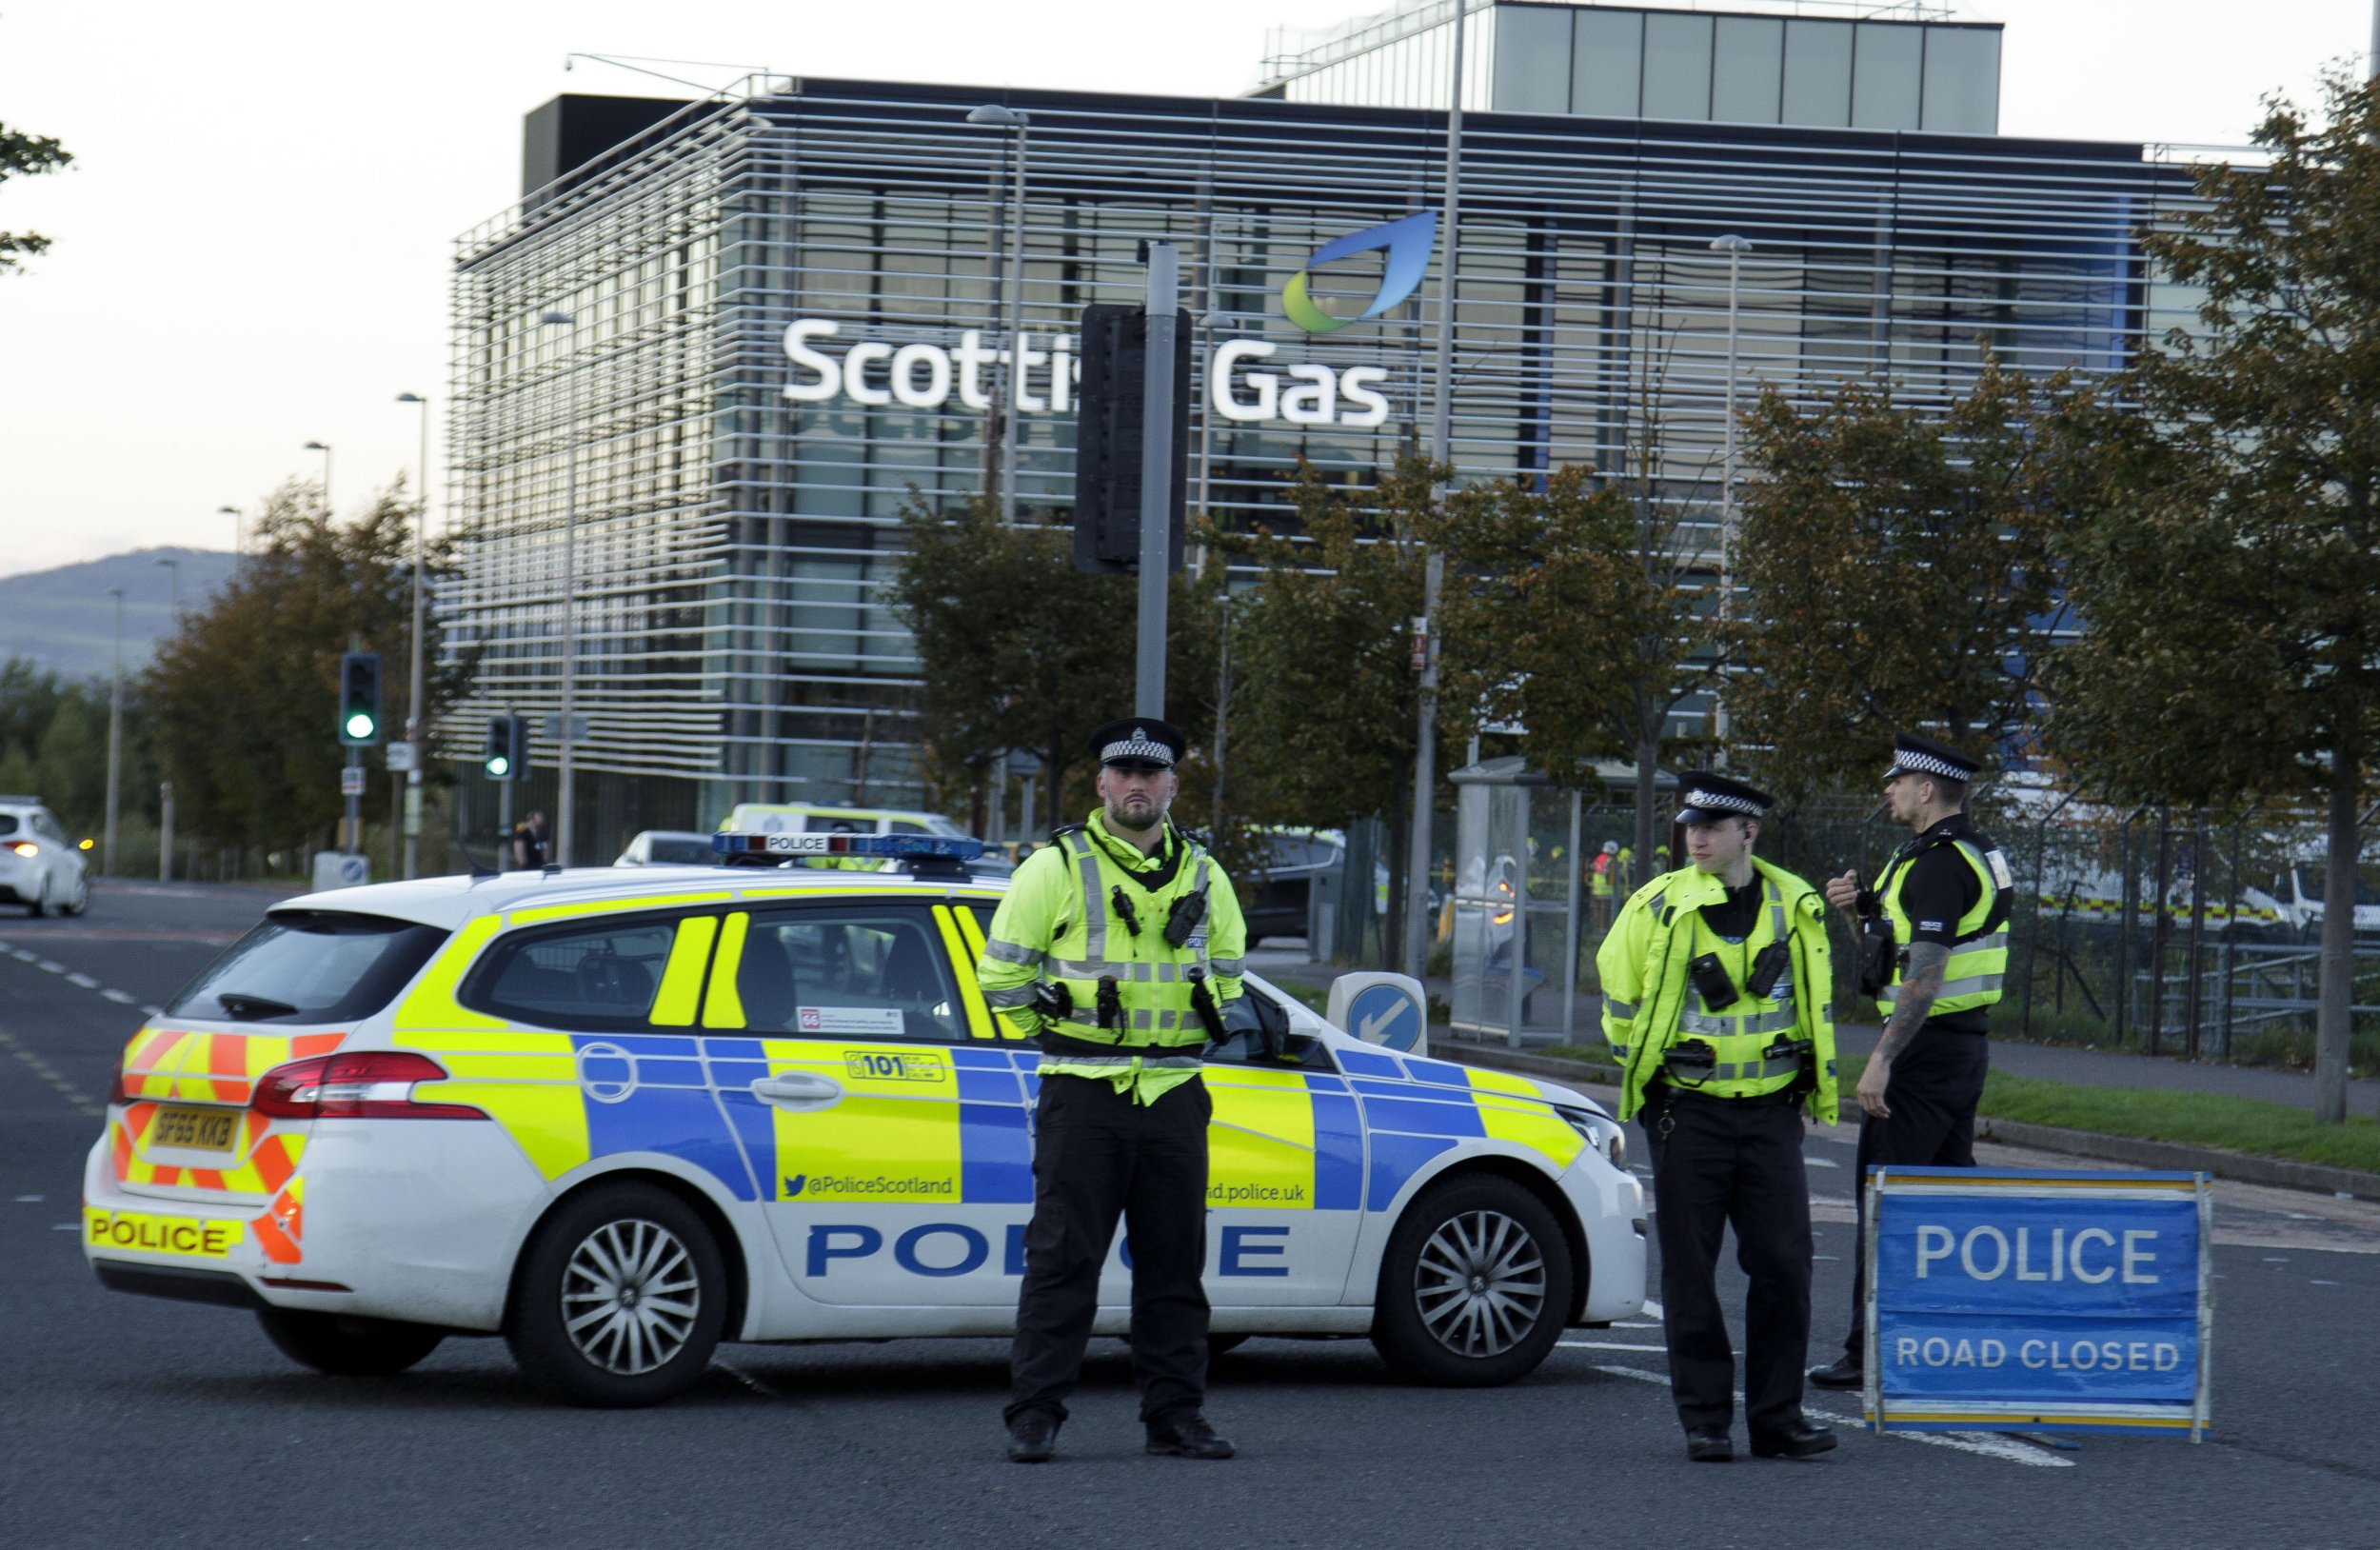 Staff rushed to hospital after 'chemical incident' at Scottish Gas HQ